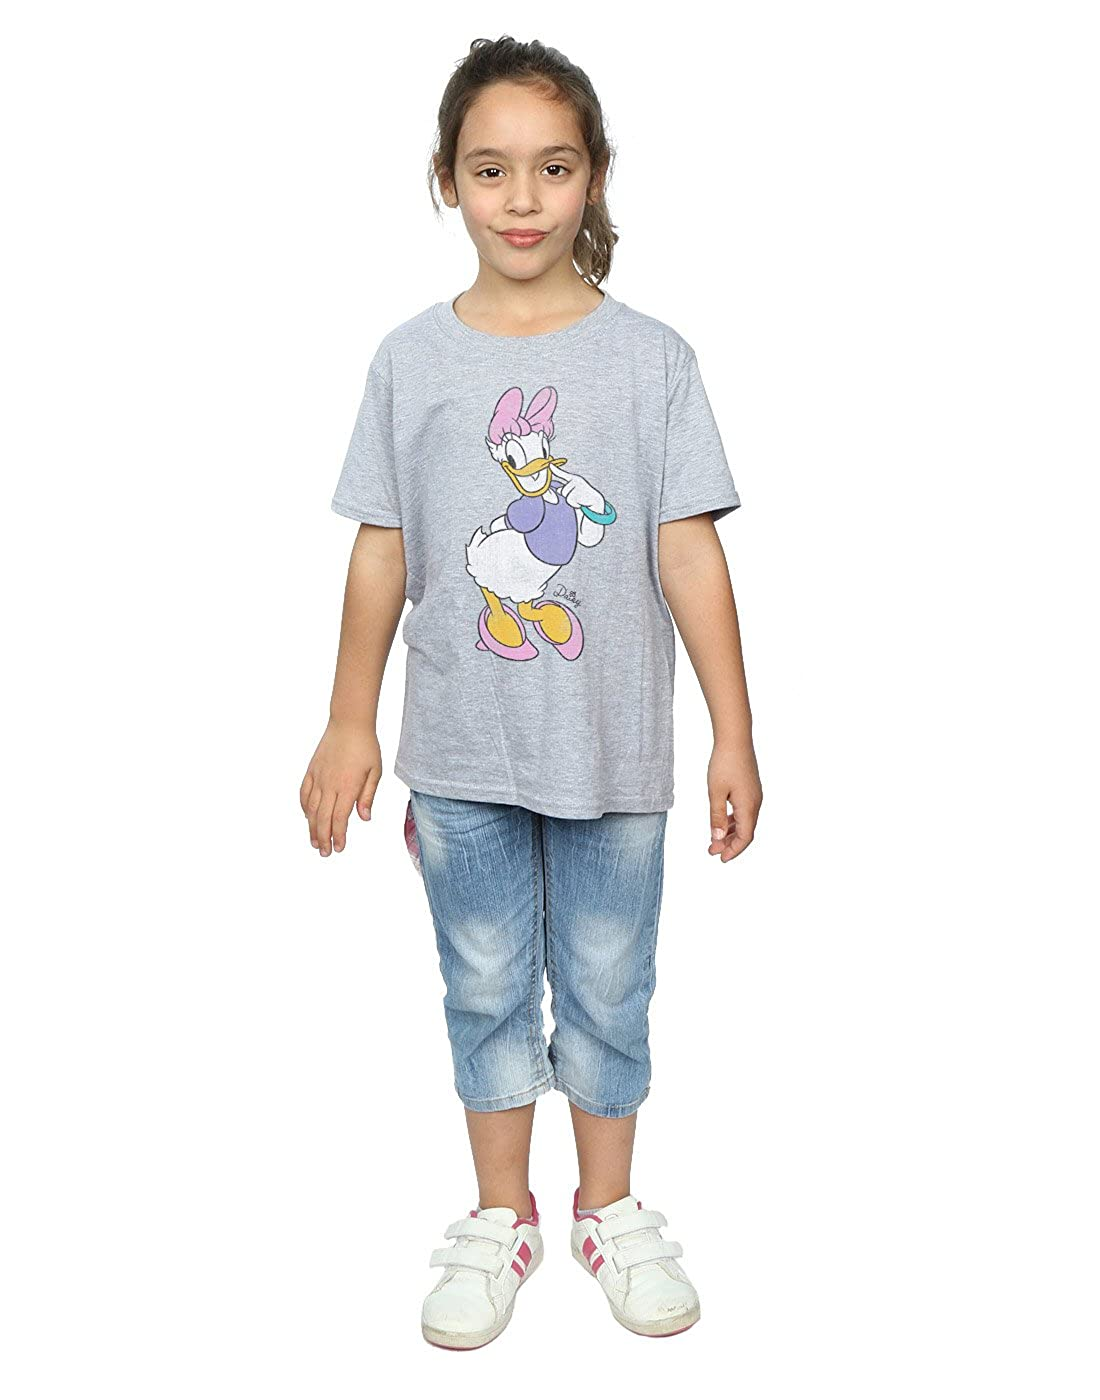 2a843c71 Amazon.com: Disney Girls Mickey Mouse Classic Daisy Duck T-Shirt: Clothing